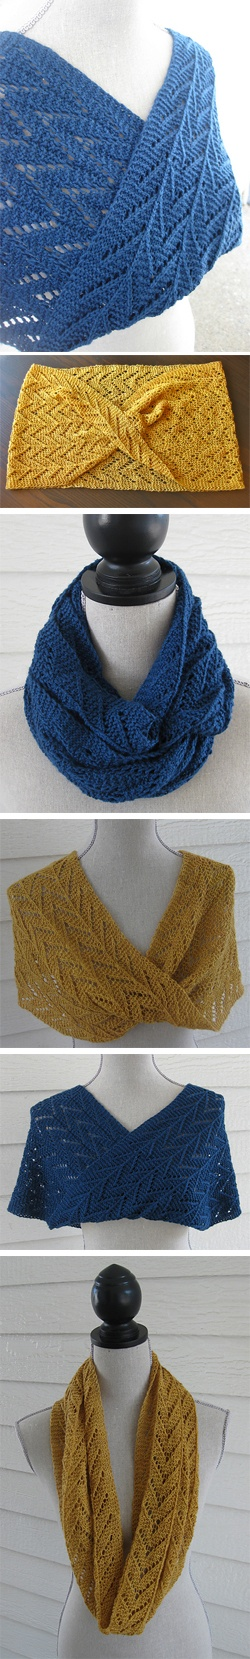 Barbara, by Debbi Stone: A great one skein project. It is knit flat and then twisted and joined into a mobius. Wear it long, wound around your neck or over your shoulders. It's perfect for that special skein in you stash and is ideal for gift giving!